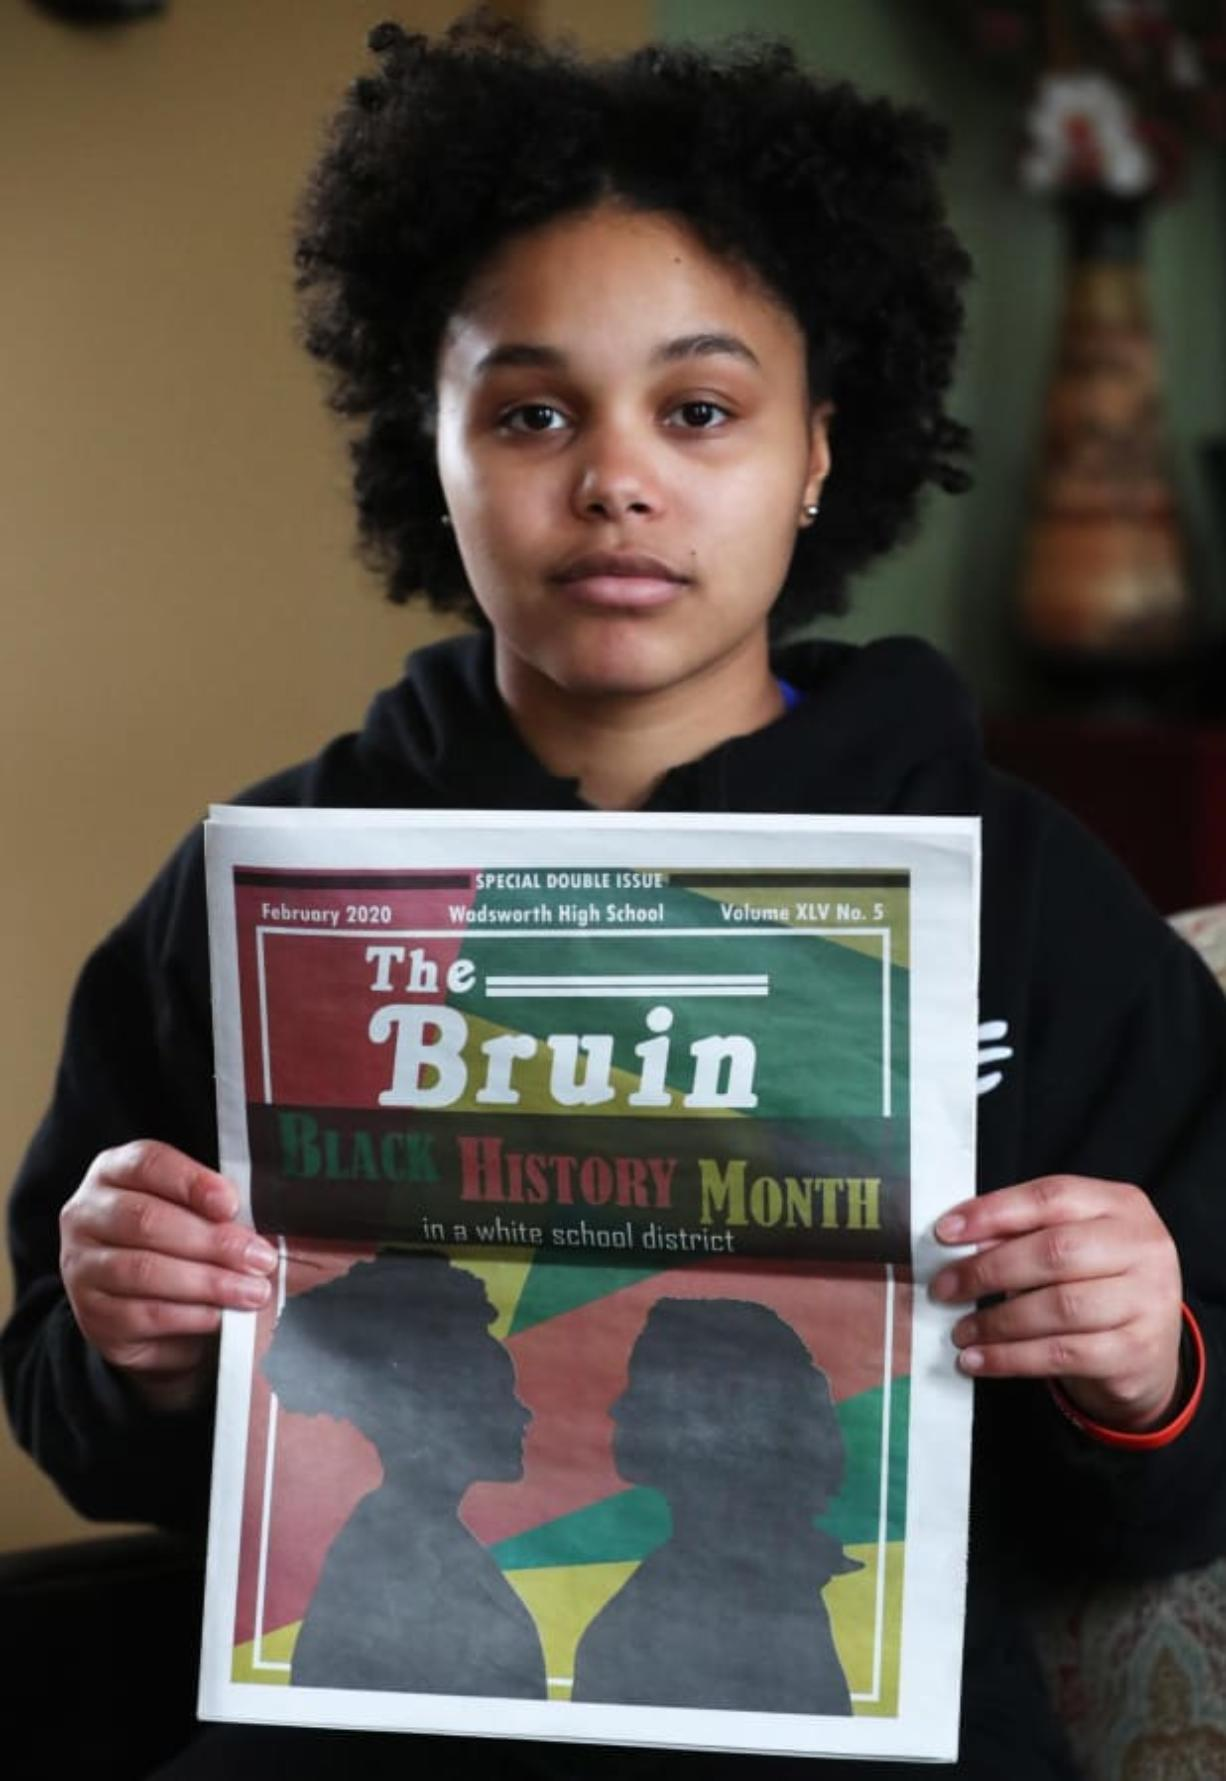 Aniya Harris a senior at Wadsworth High holds a copy of the Wadsworth Bruin, the school's newspaper, with the cover story on Black History Month in a White School District at her Wadsworth home on Tuesday, Feb. 25, 2020. Harris, who is on the cover as the silhouette on the left, also wrote a column that accompanies the main story.  The district pulled the pulled the issue and reprinted it without the words in a white school district.